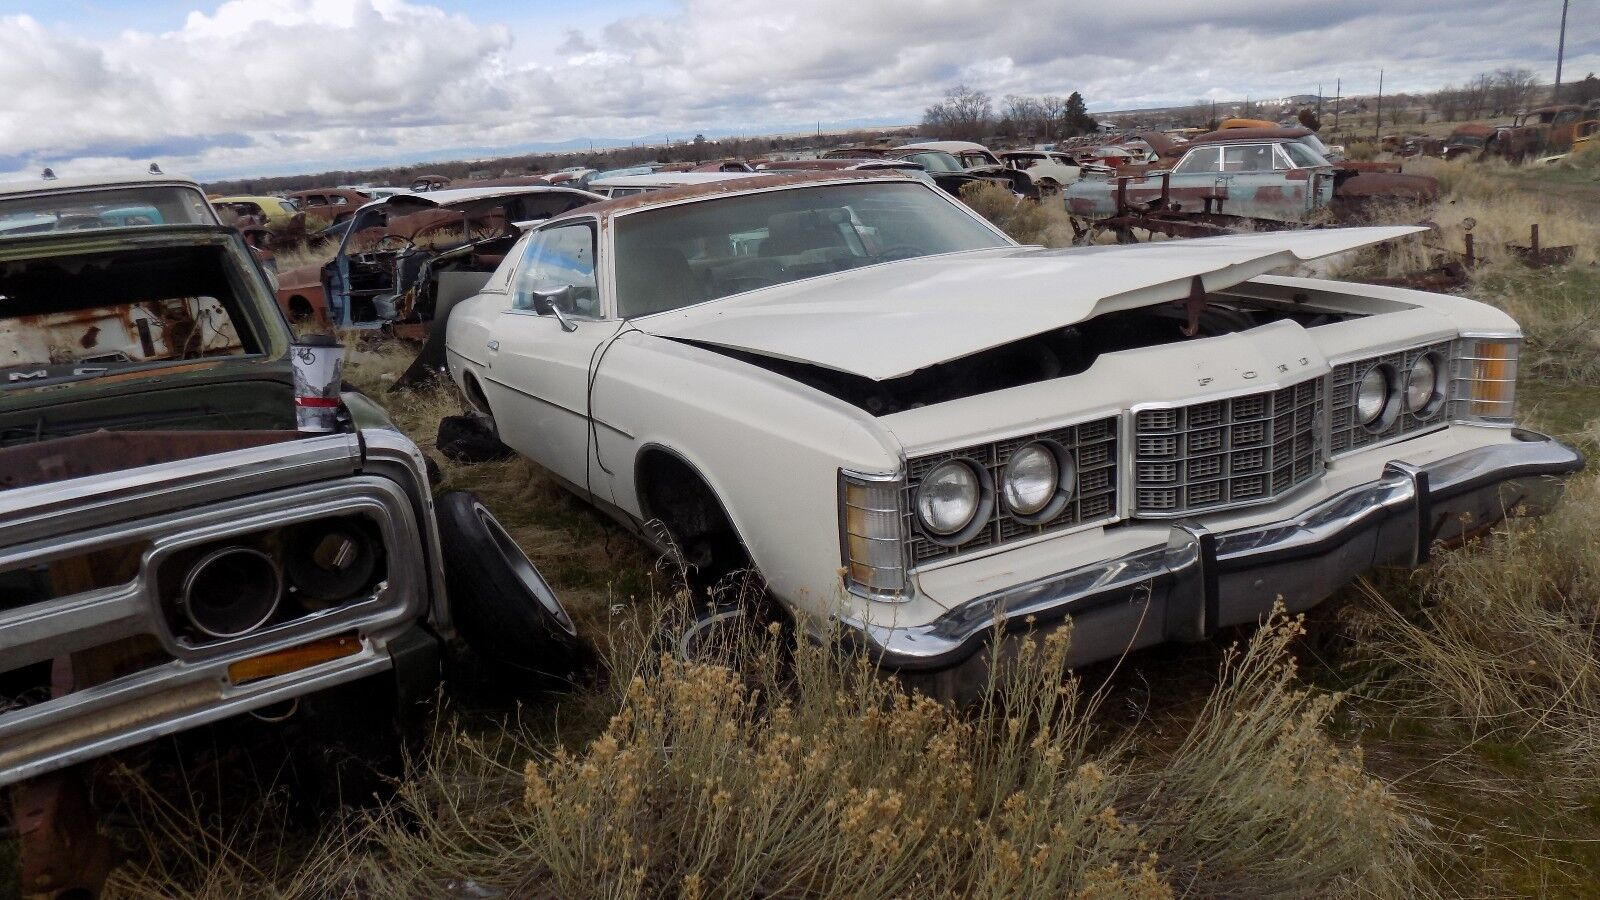 Used Ford Ltd Exterior Parts For Sale 1970 Crown Victoria 1973 Right Door Lock Rod 2 Dry Desert Western Part